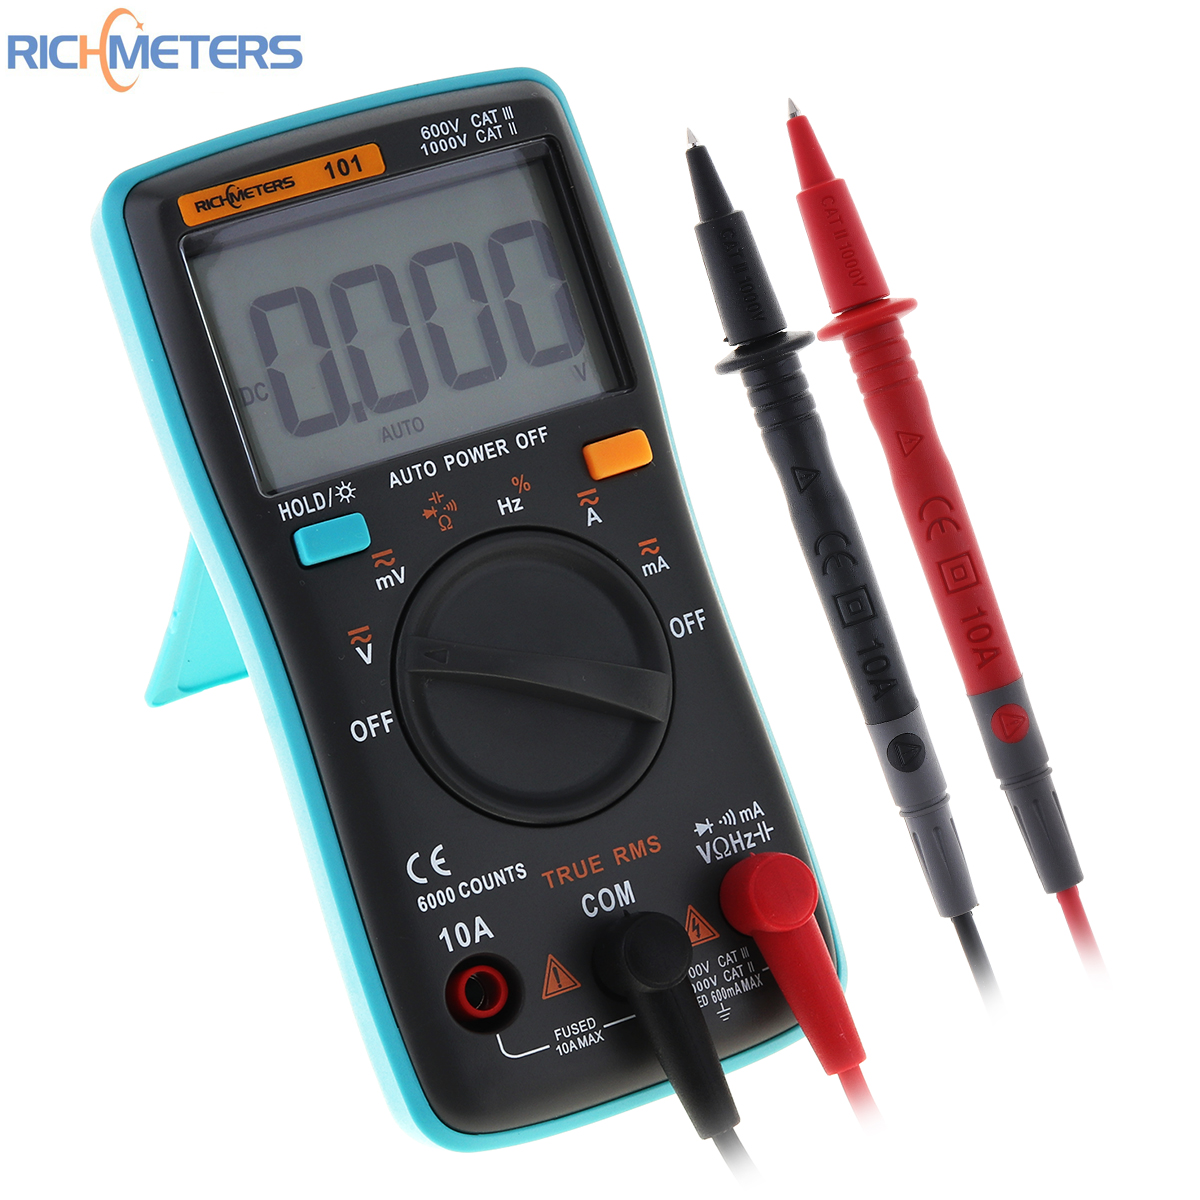 RICHMETERS RM101 Digital Multimeter 6000 Counts AC /DC Ammeter Voltmeter Ohm Portable Meter with Backlight digital multimeter 6000 counts backlight ac dc meter ammeter voltmeter xj16 y103